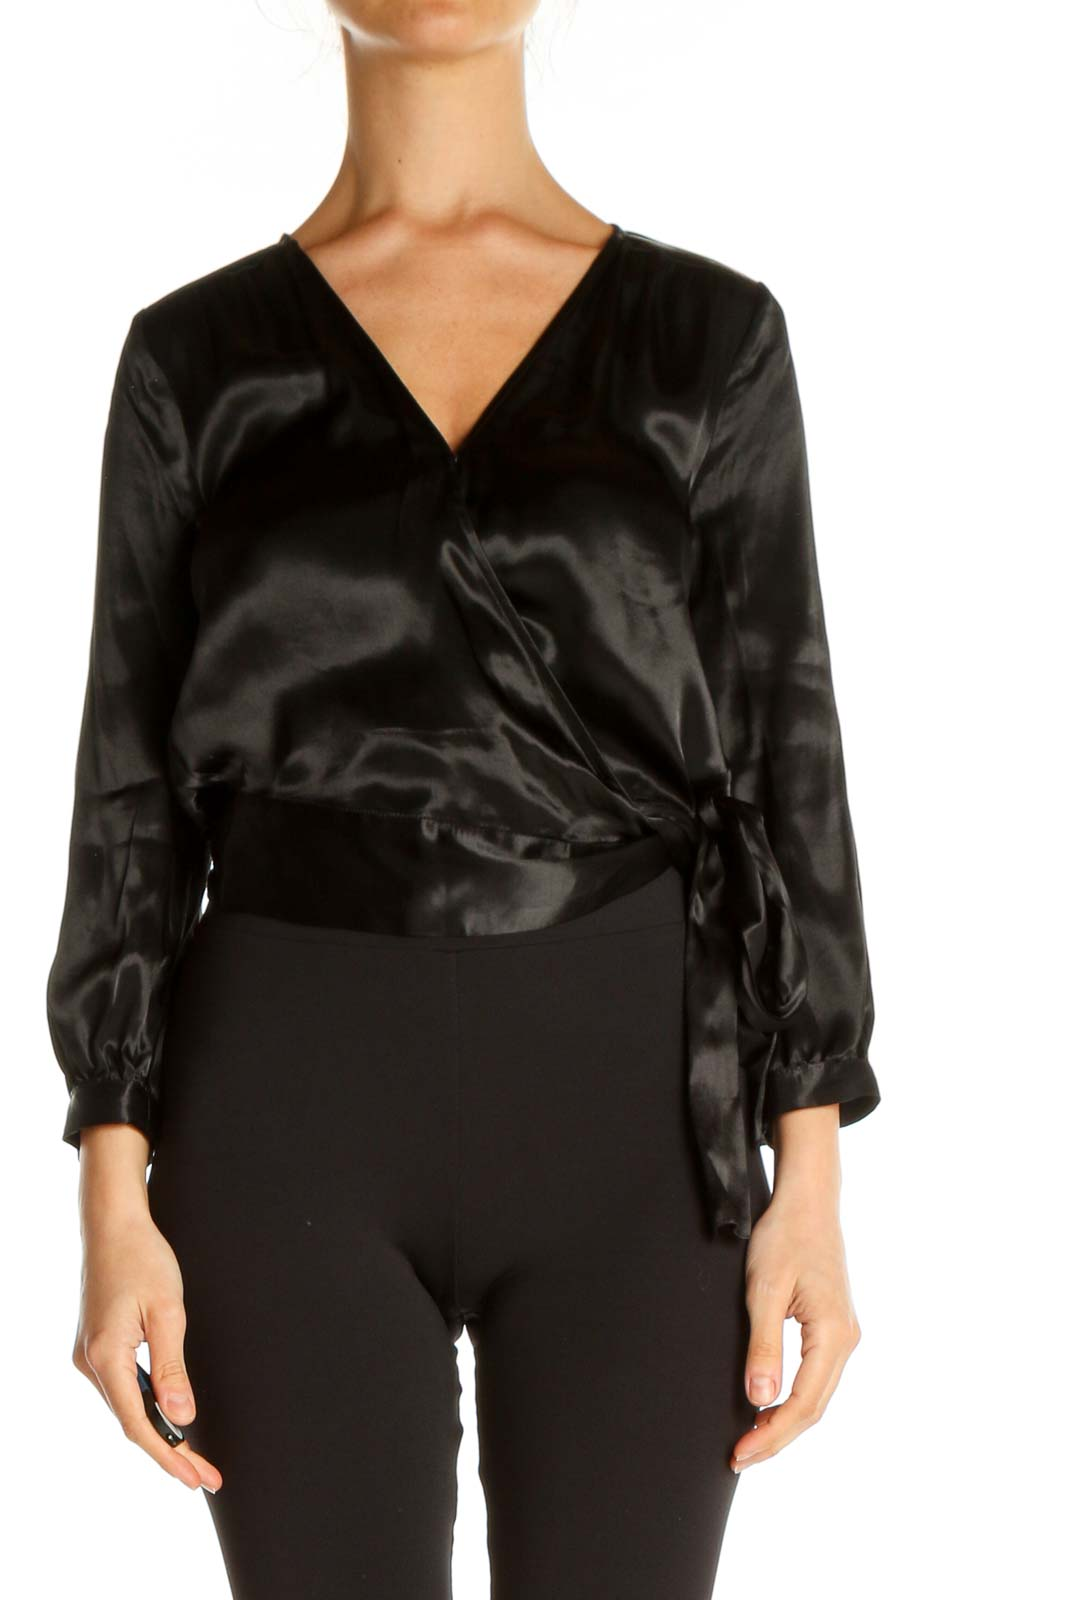 Black Solid Party Wear Blouse Front